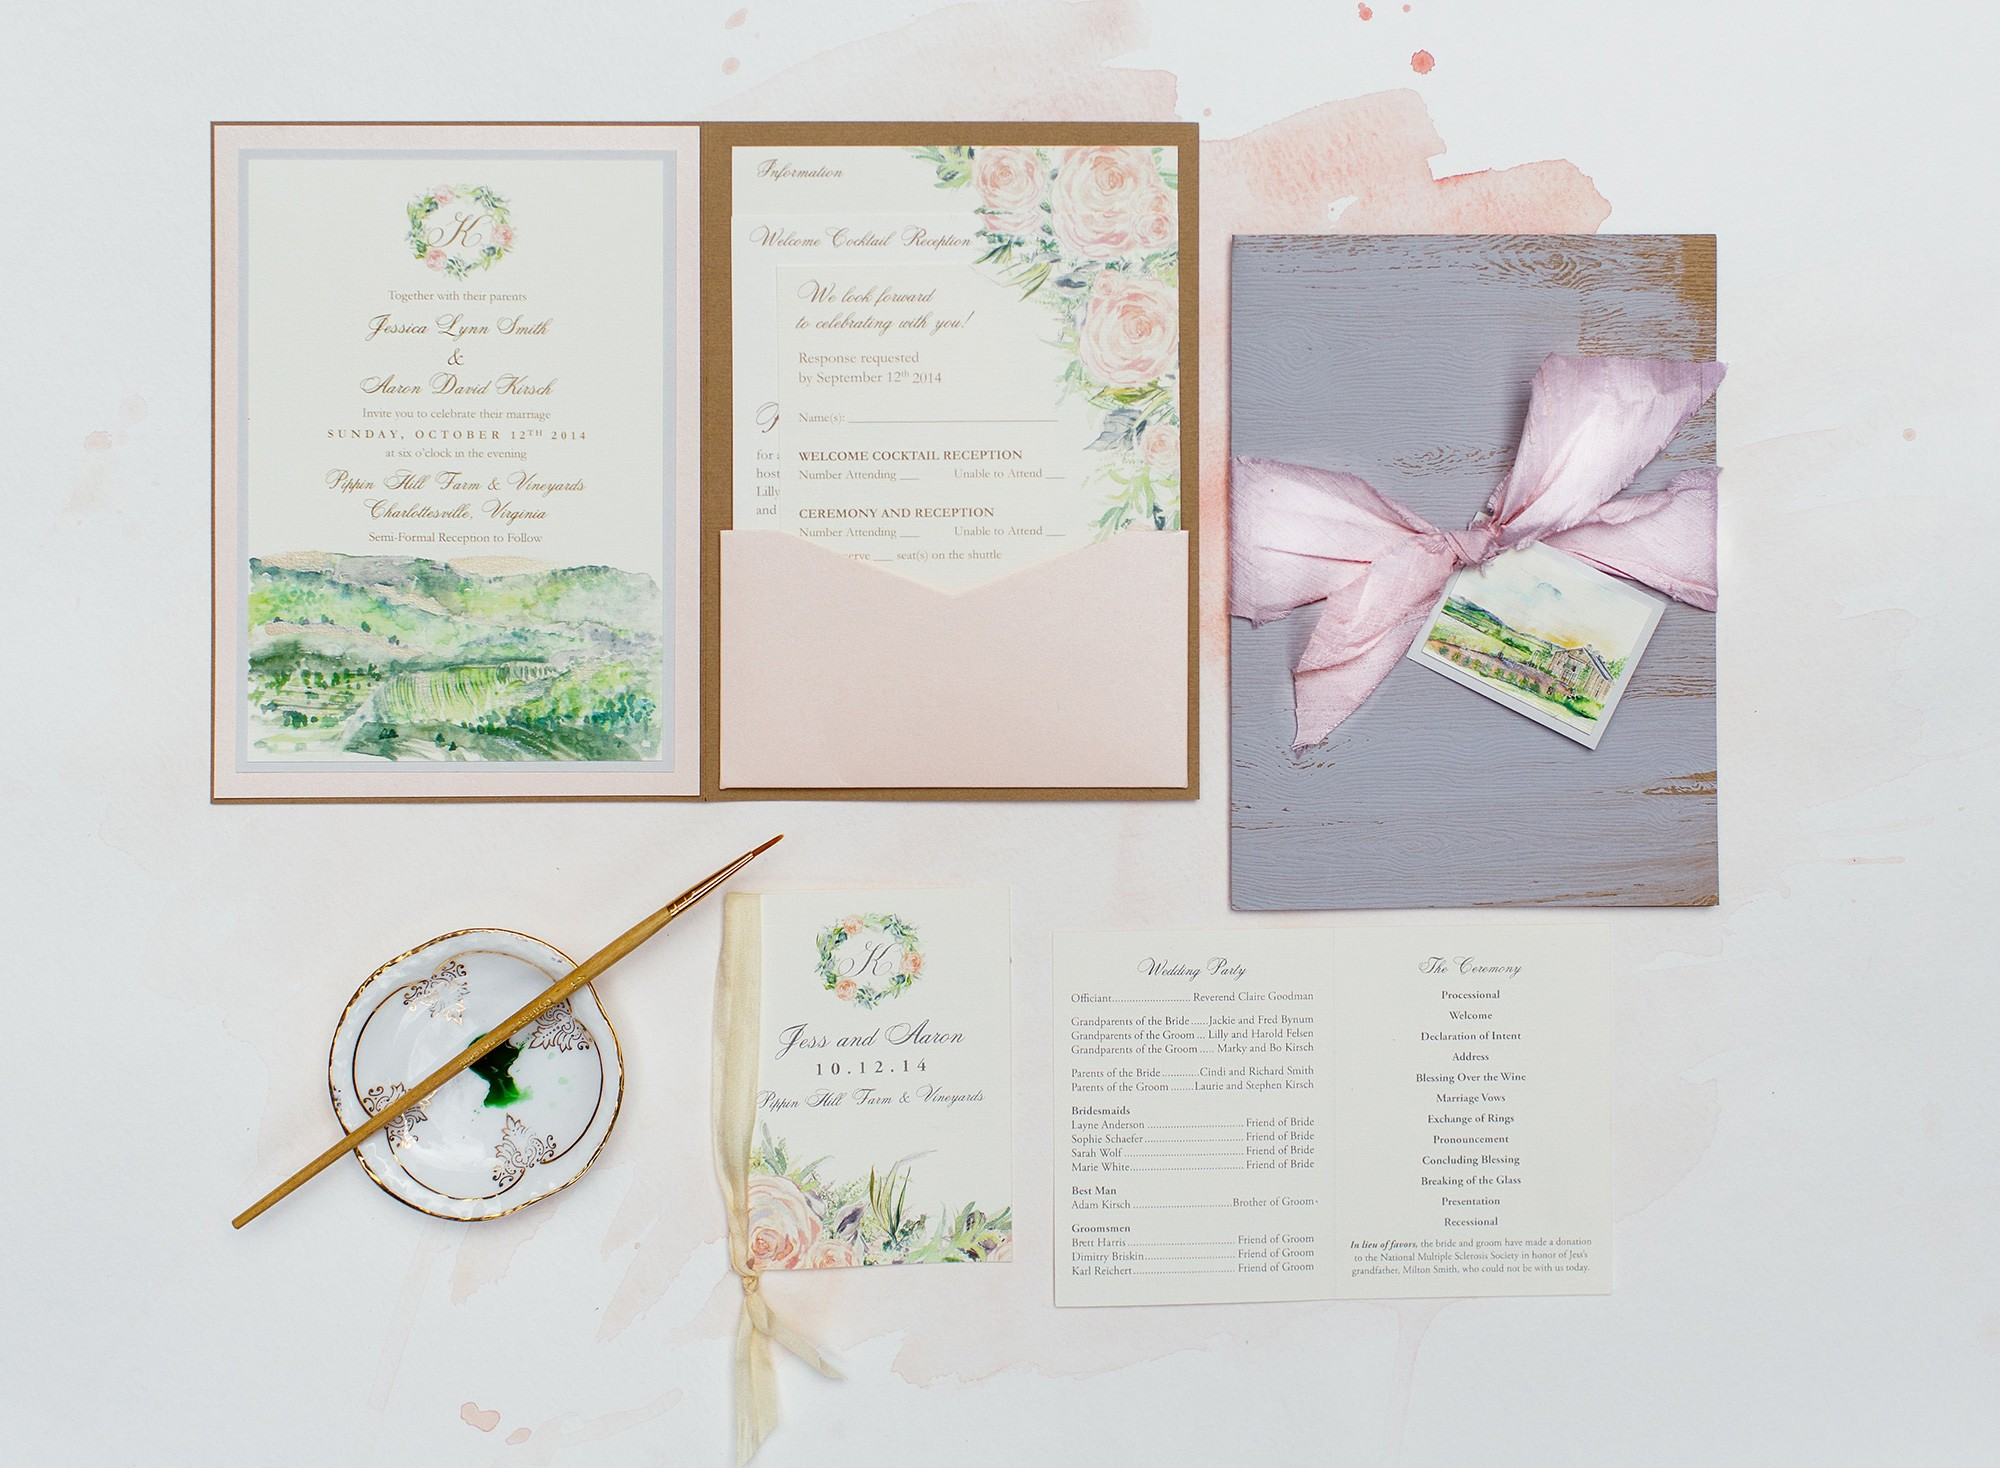 Pin It Hand Painted Places Watercolor Landscape Wedding Invitation